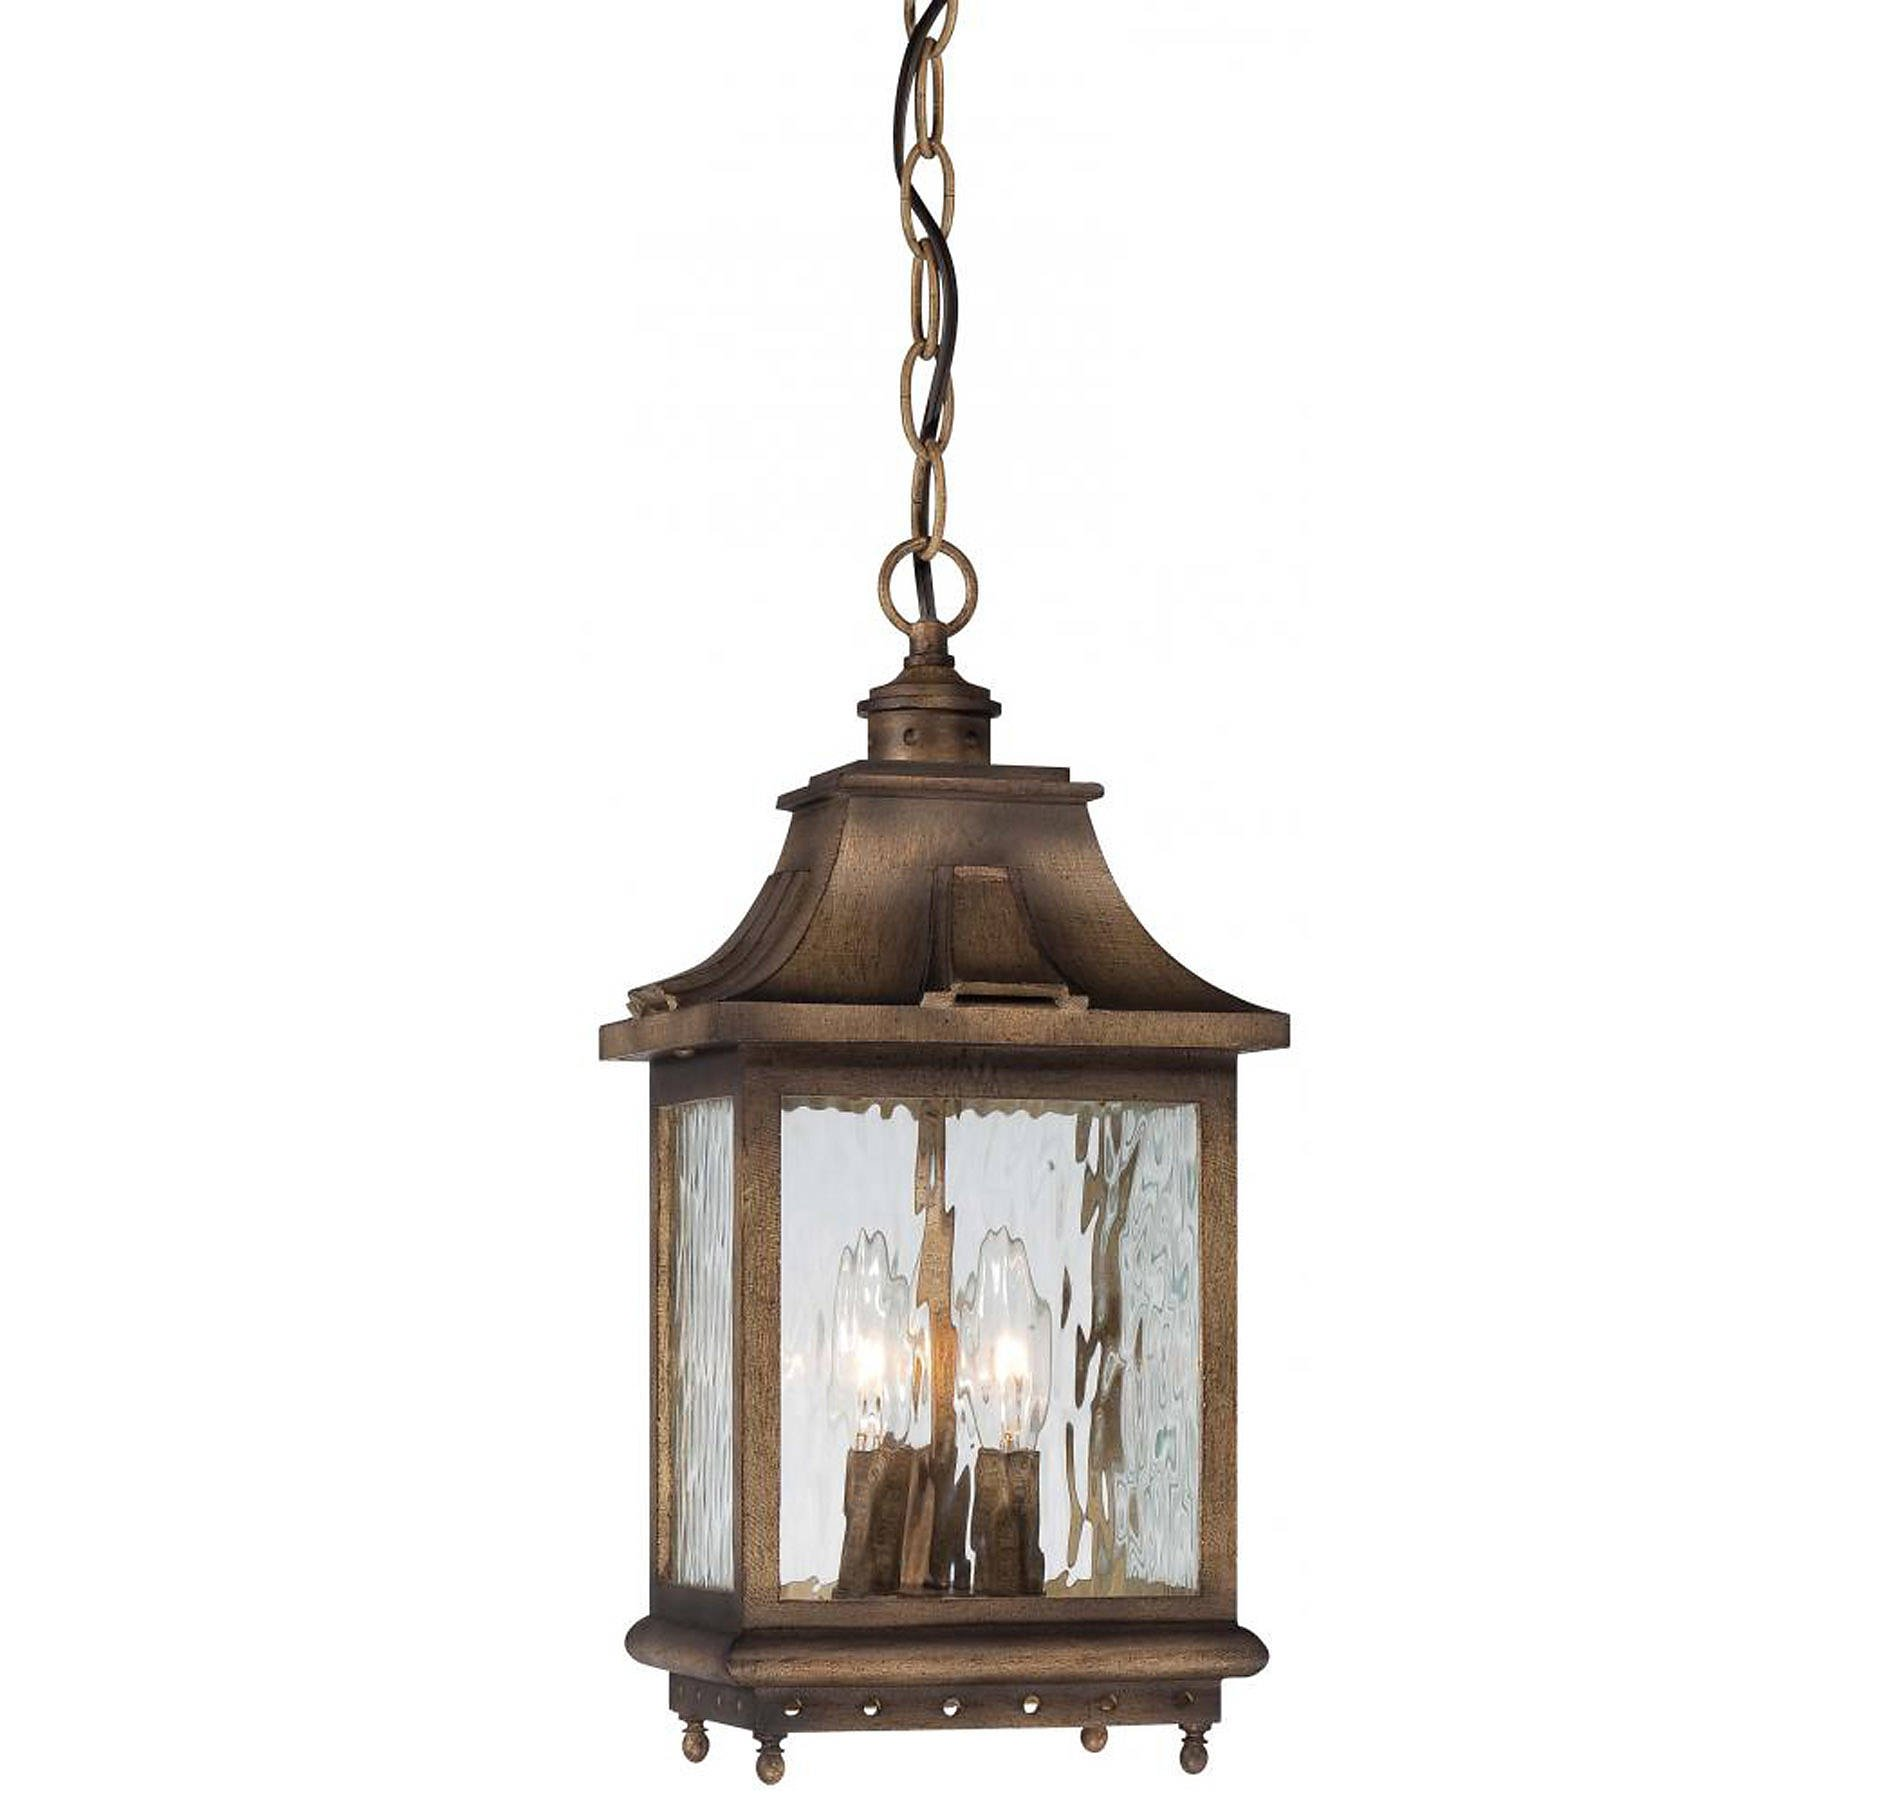 Minka Lavery 72114-149, Wilshire Park Aluminum Outdoor Ceiling Light, 225 Total Watts, Bronze by Minka Lavery